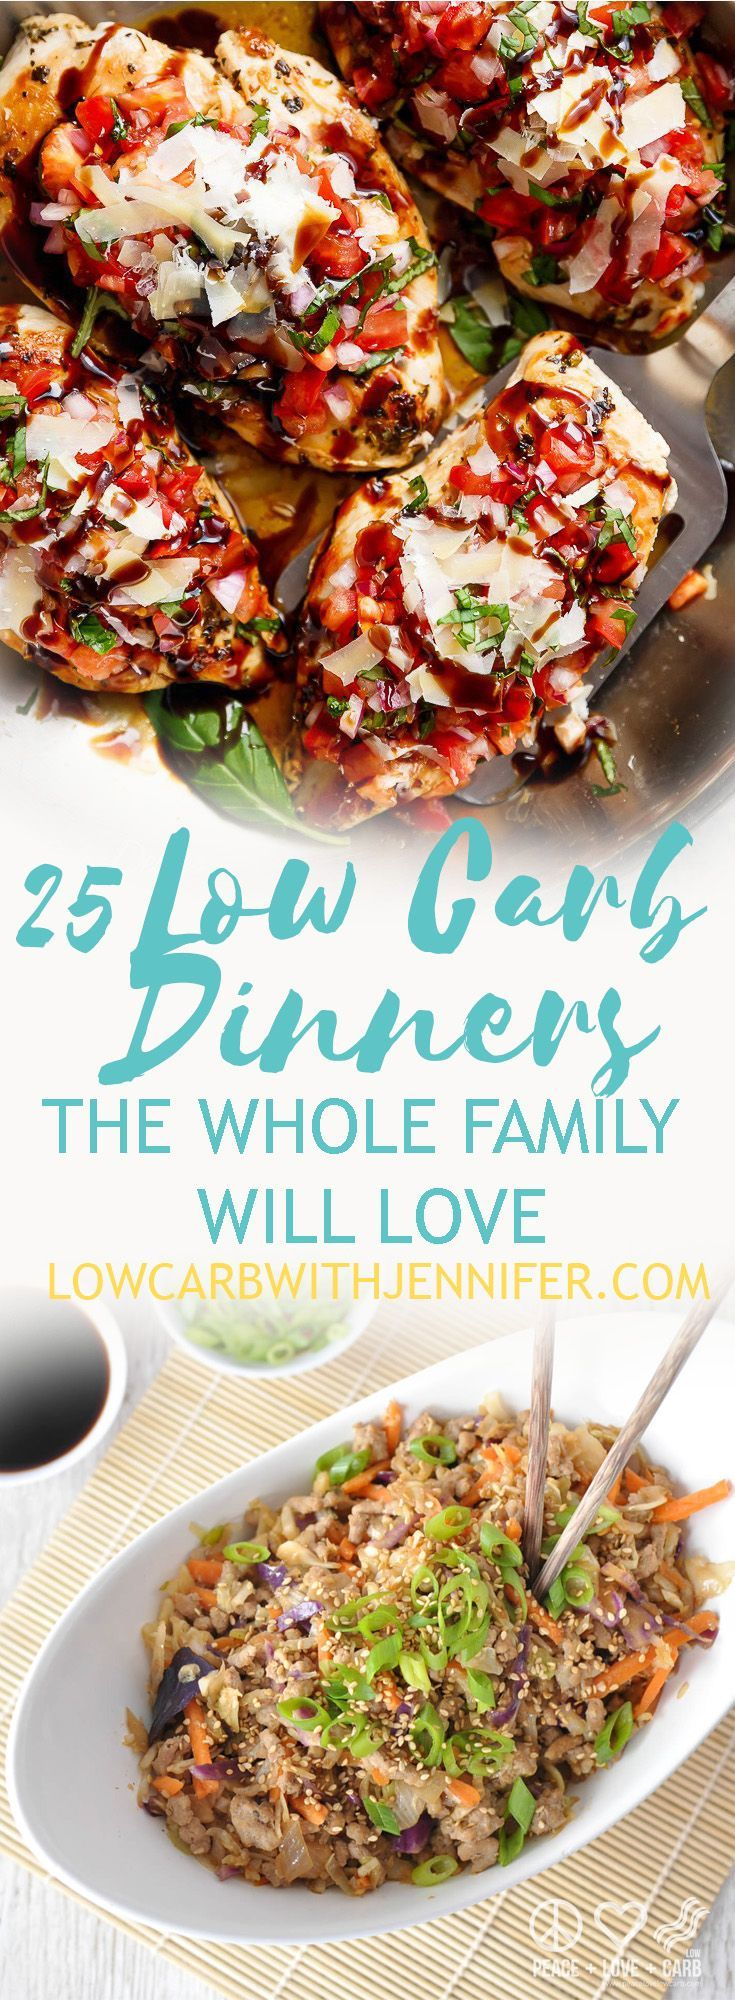 Blue apron low carb - 25 Low Carb Dinners The Whole Family Will Love